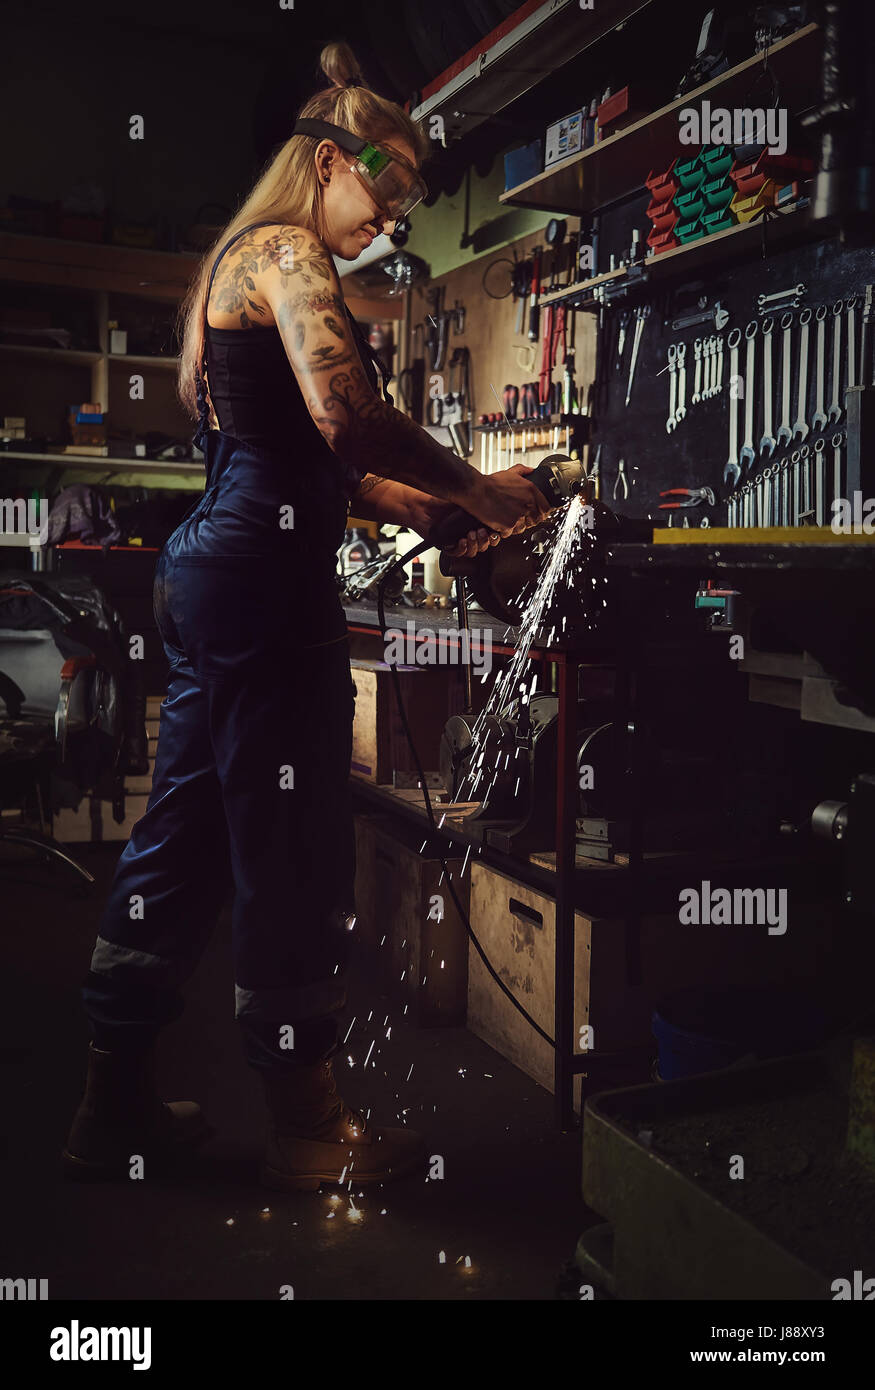 Woman mechanic working in a motorcycle workshop - Stock Image